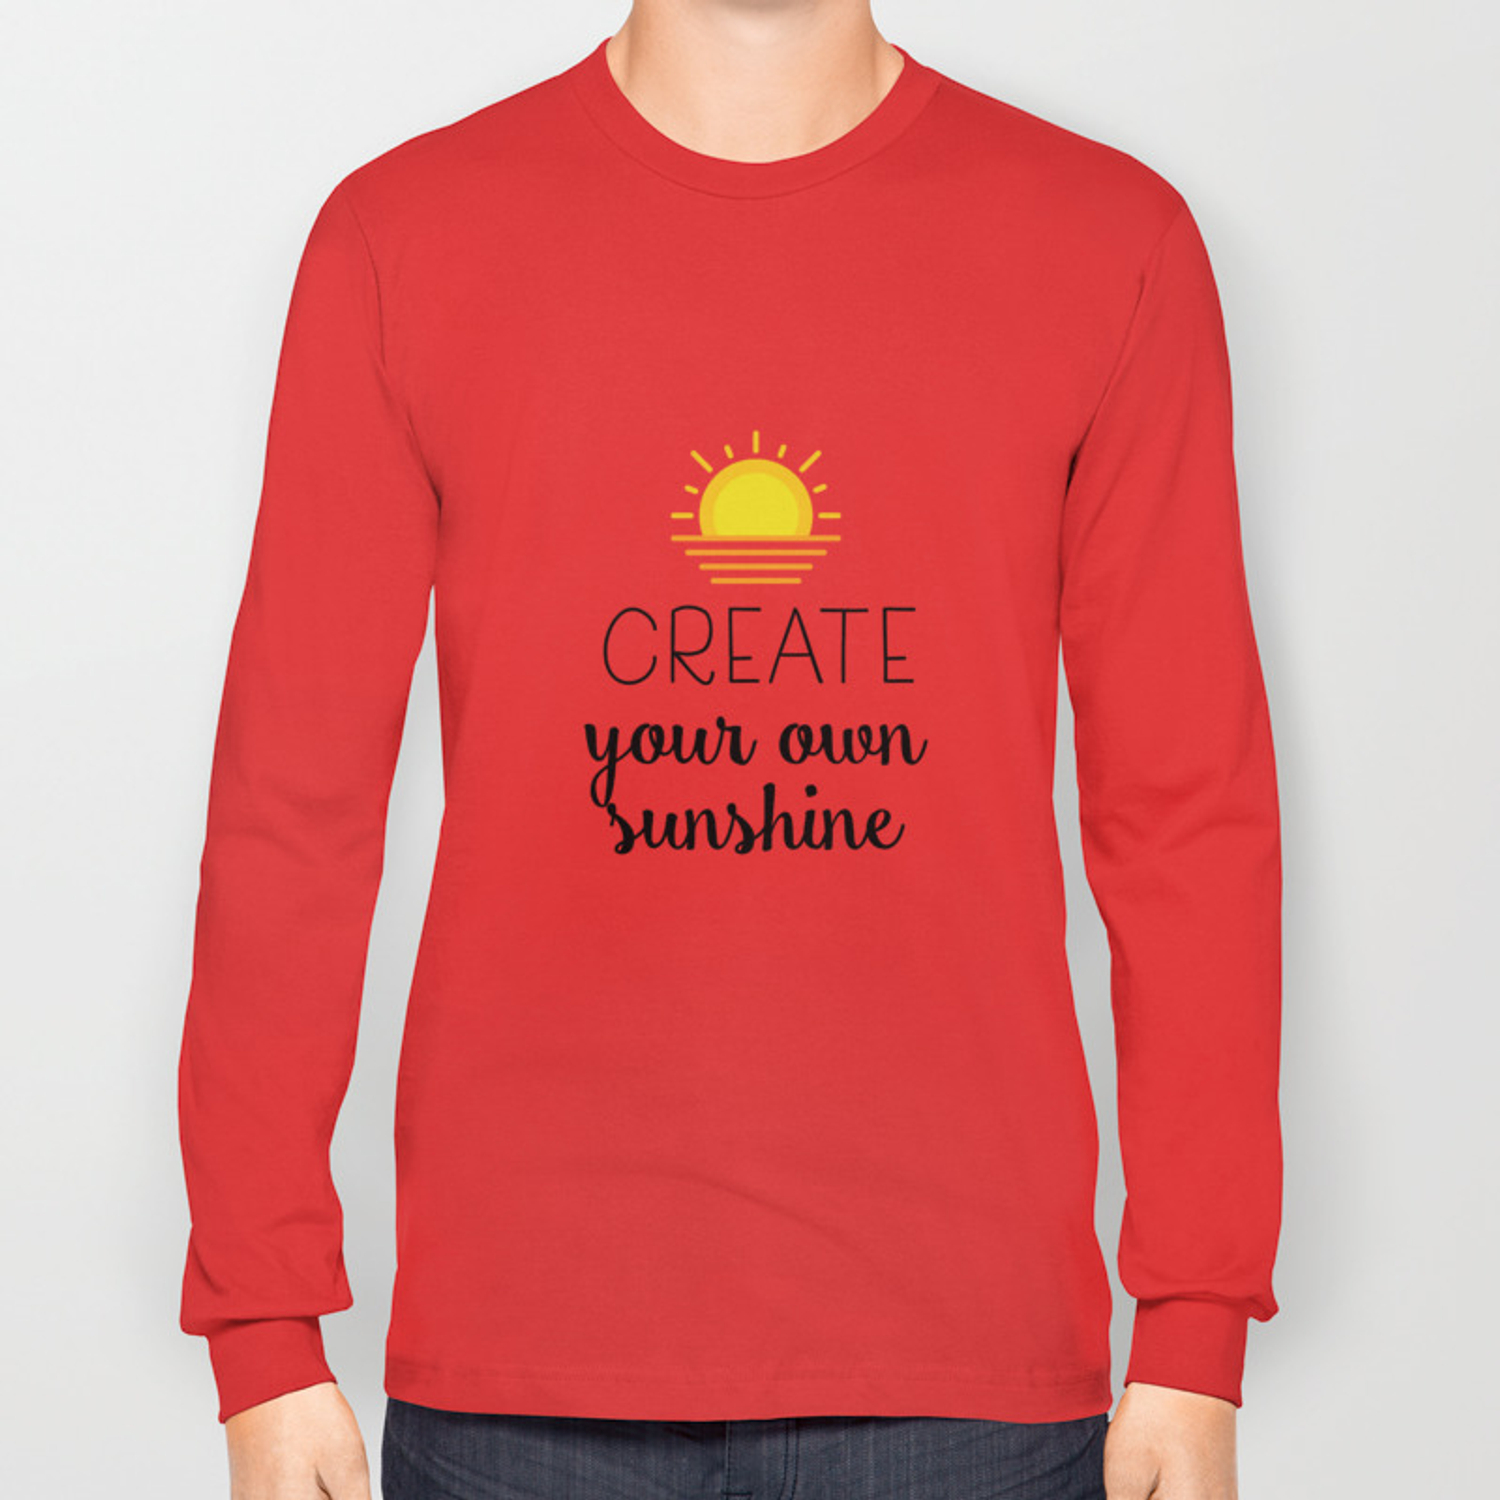 257a7fec0 Create your own sunshine Long Sleeve T-shirt by catmustache | Society6